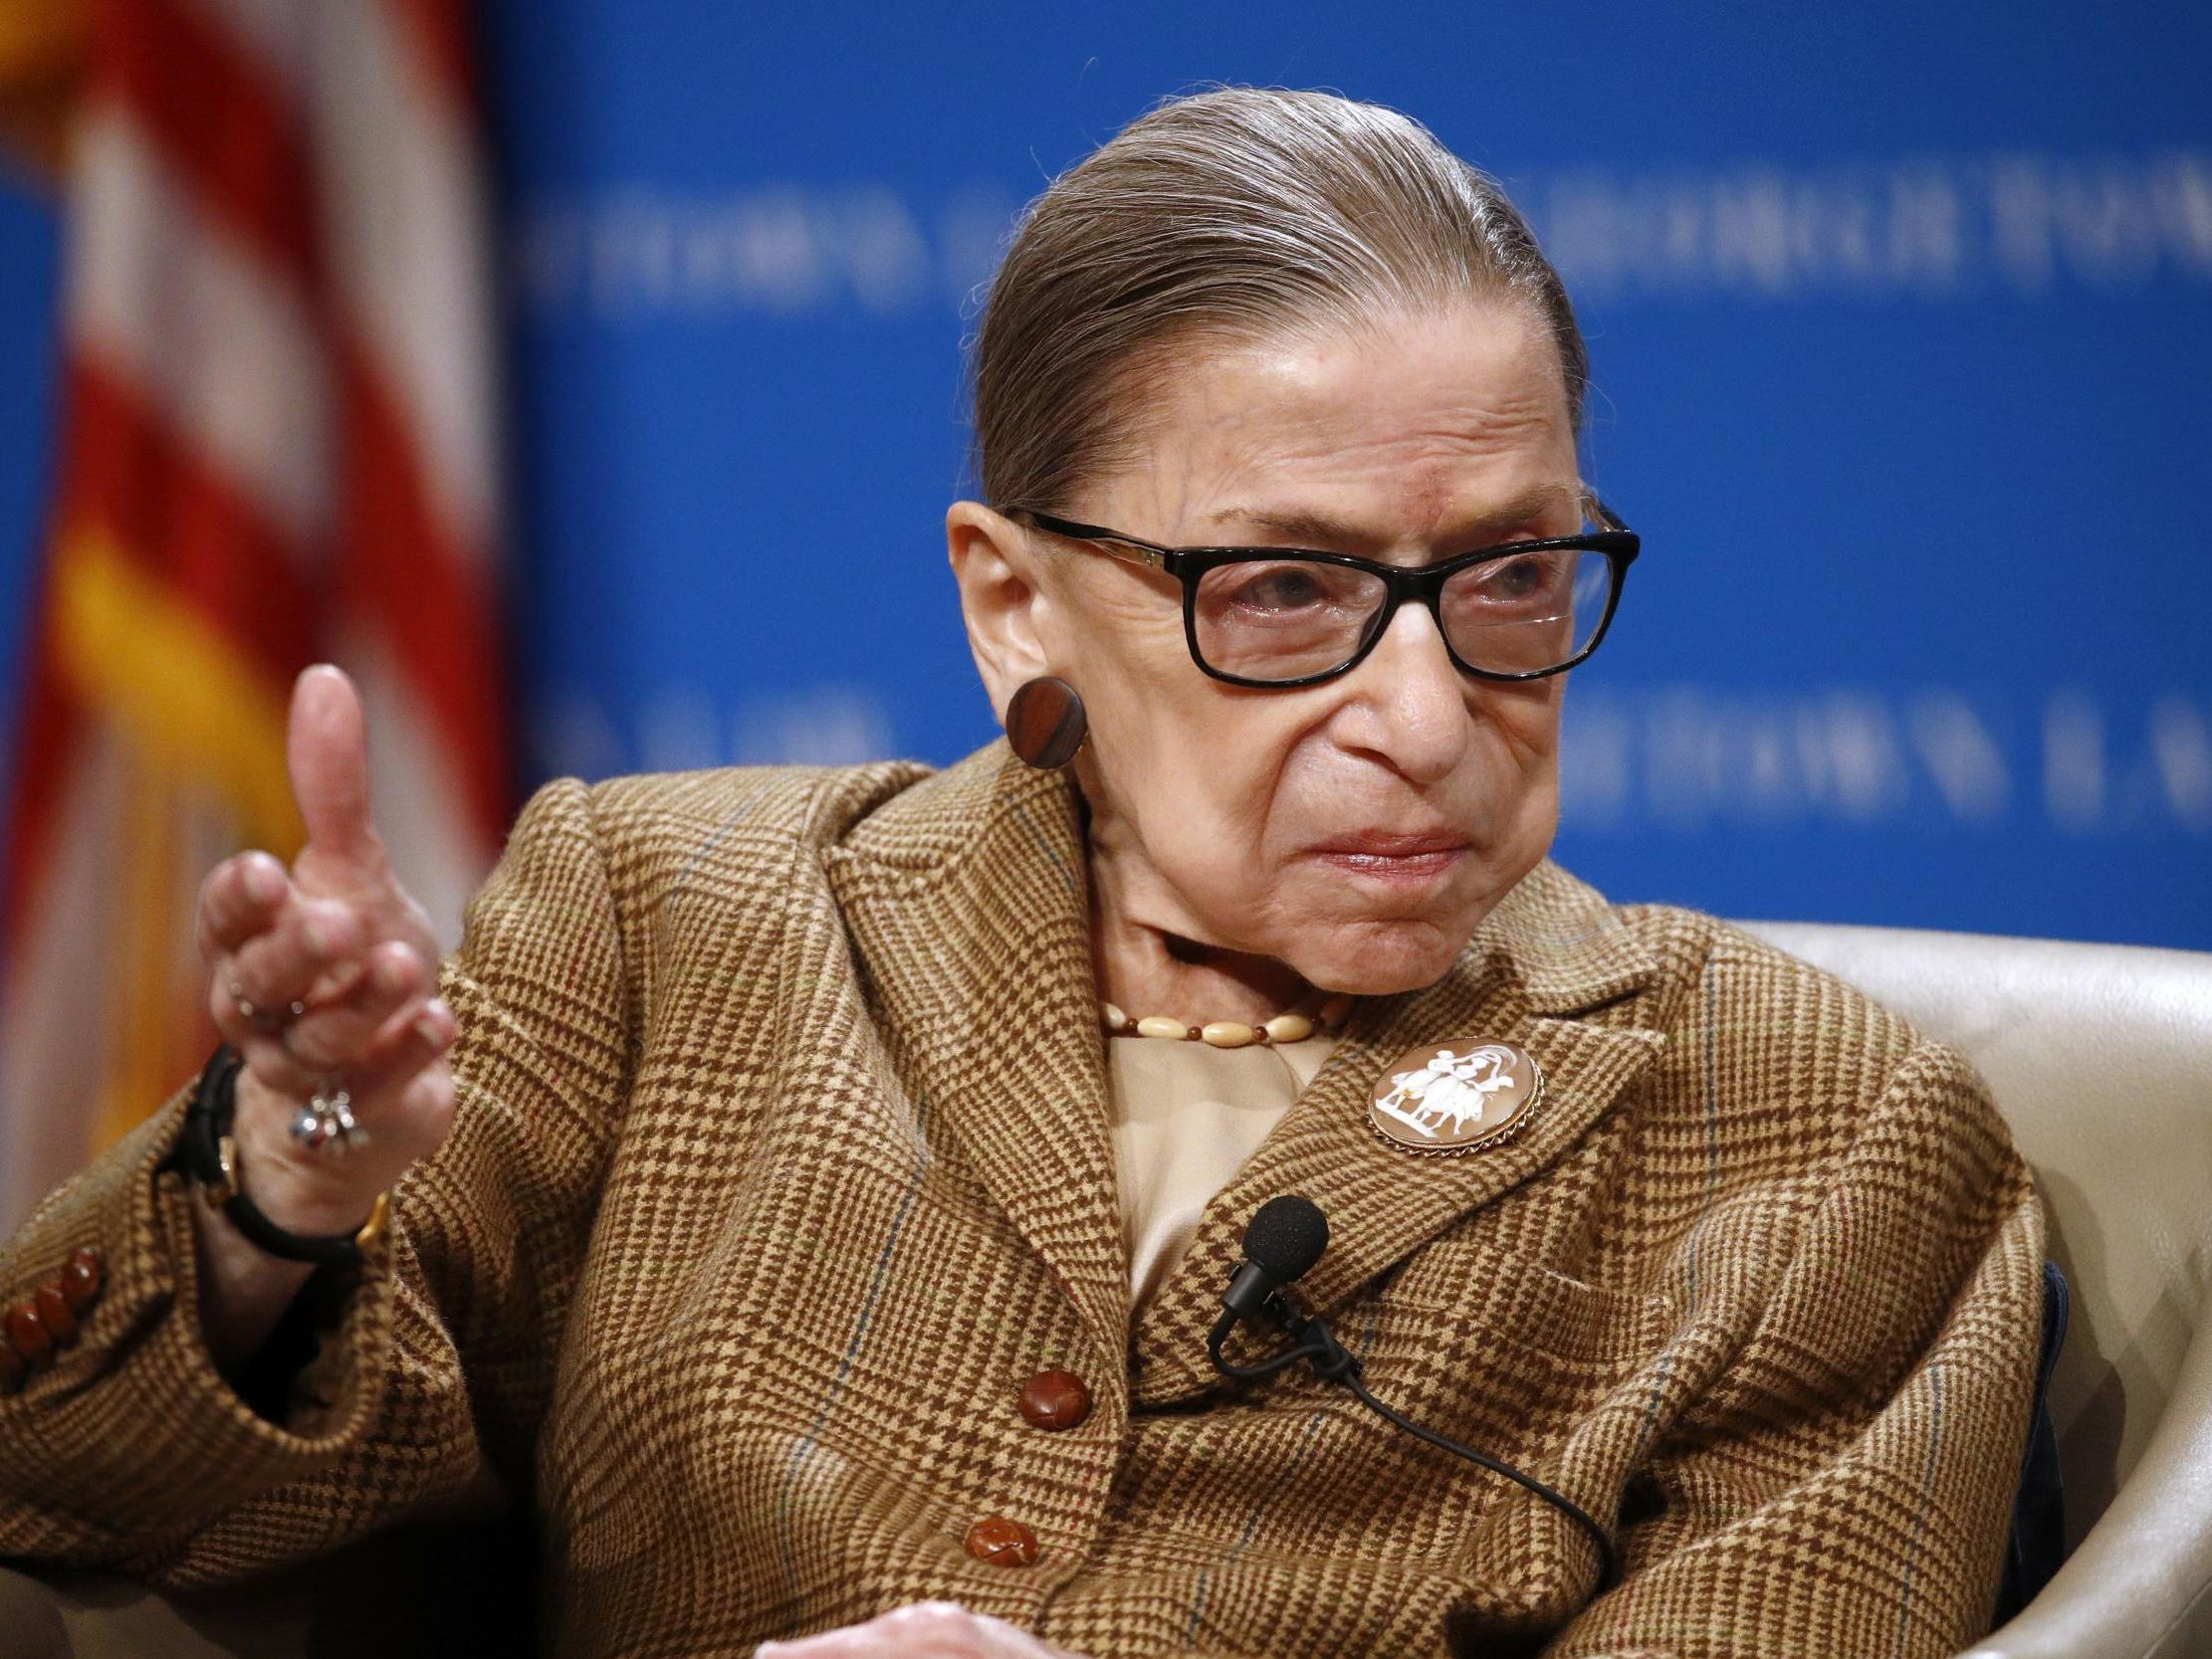 Ruth Bader Ginsburg challenges Trump's 'tossing to the wind' of Obamacare access to contraceptives – from hospital thumbnail